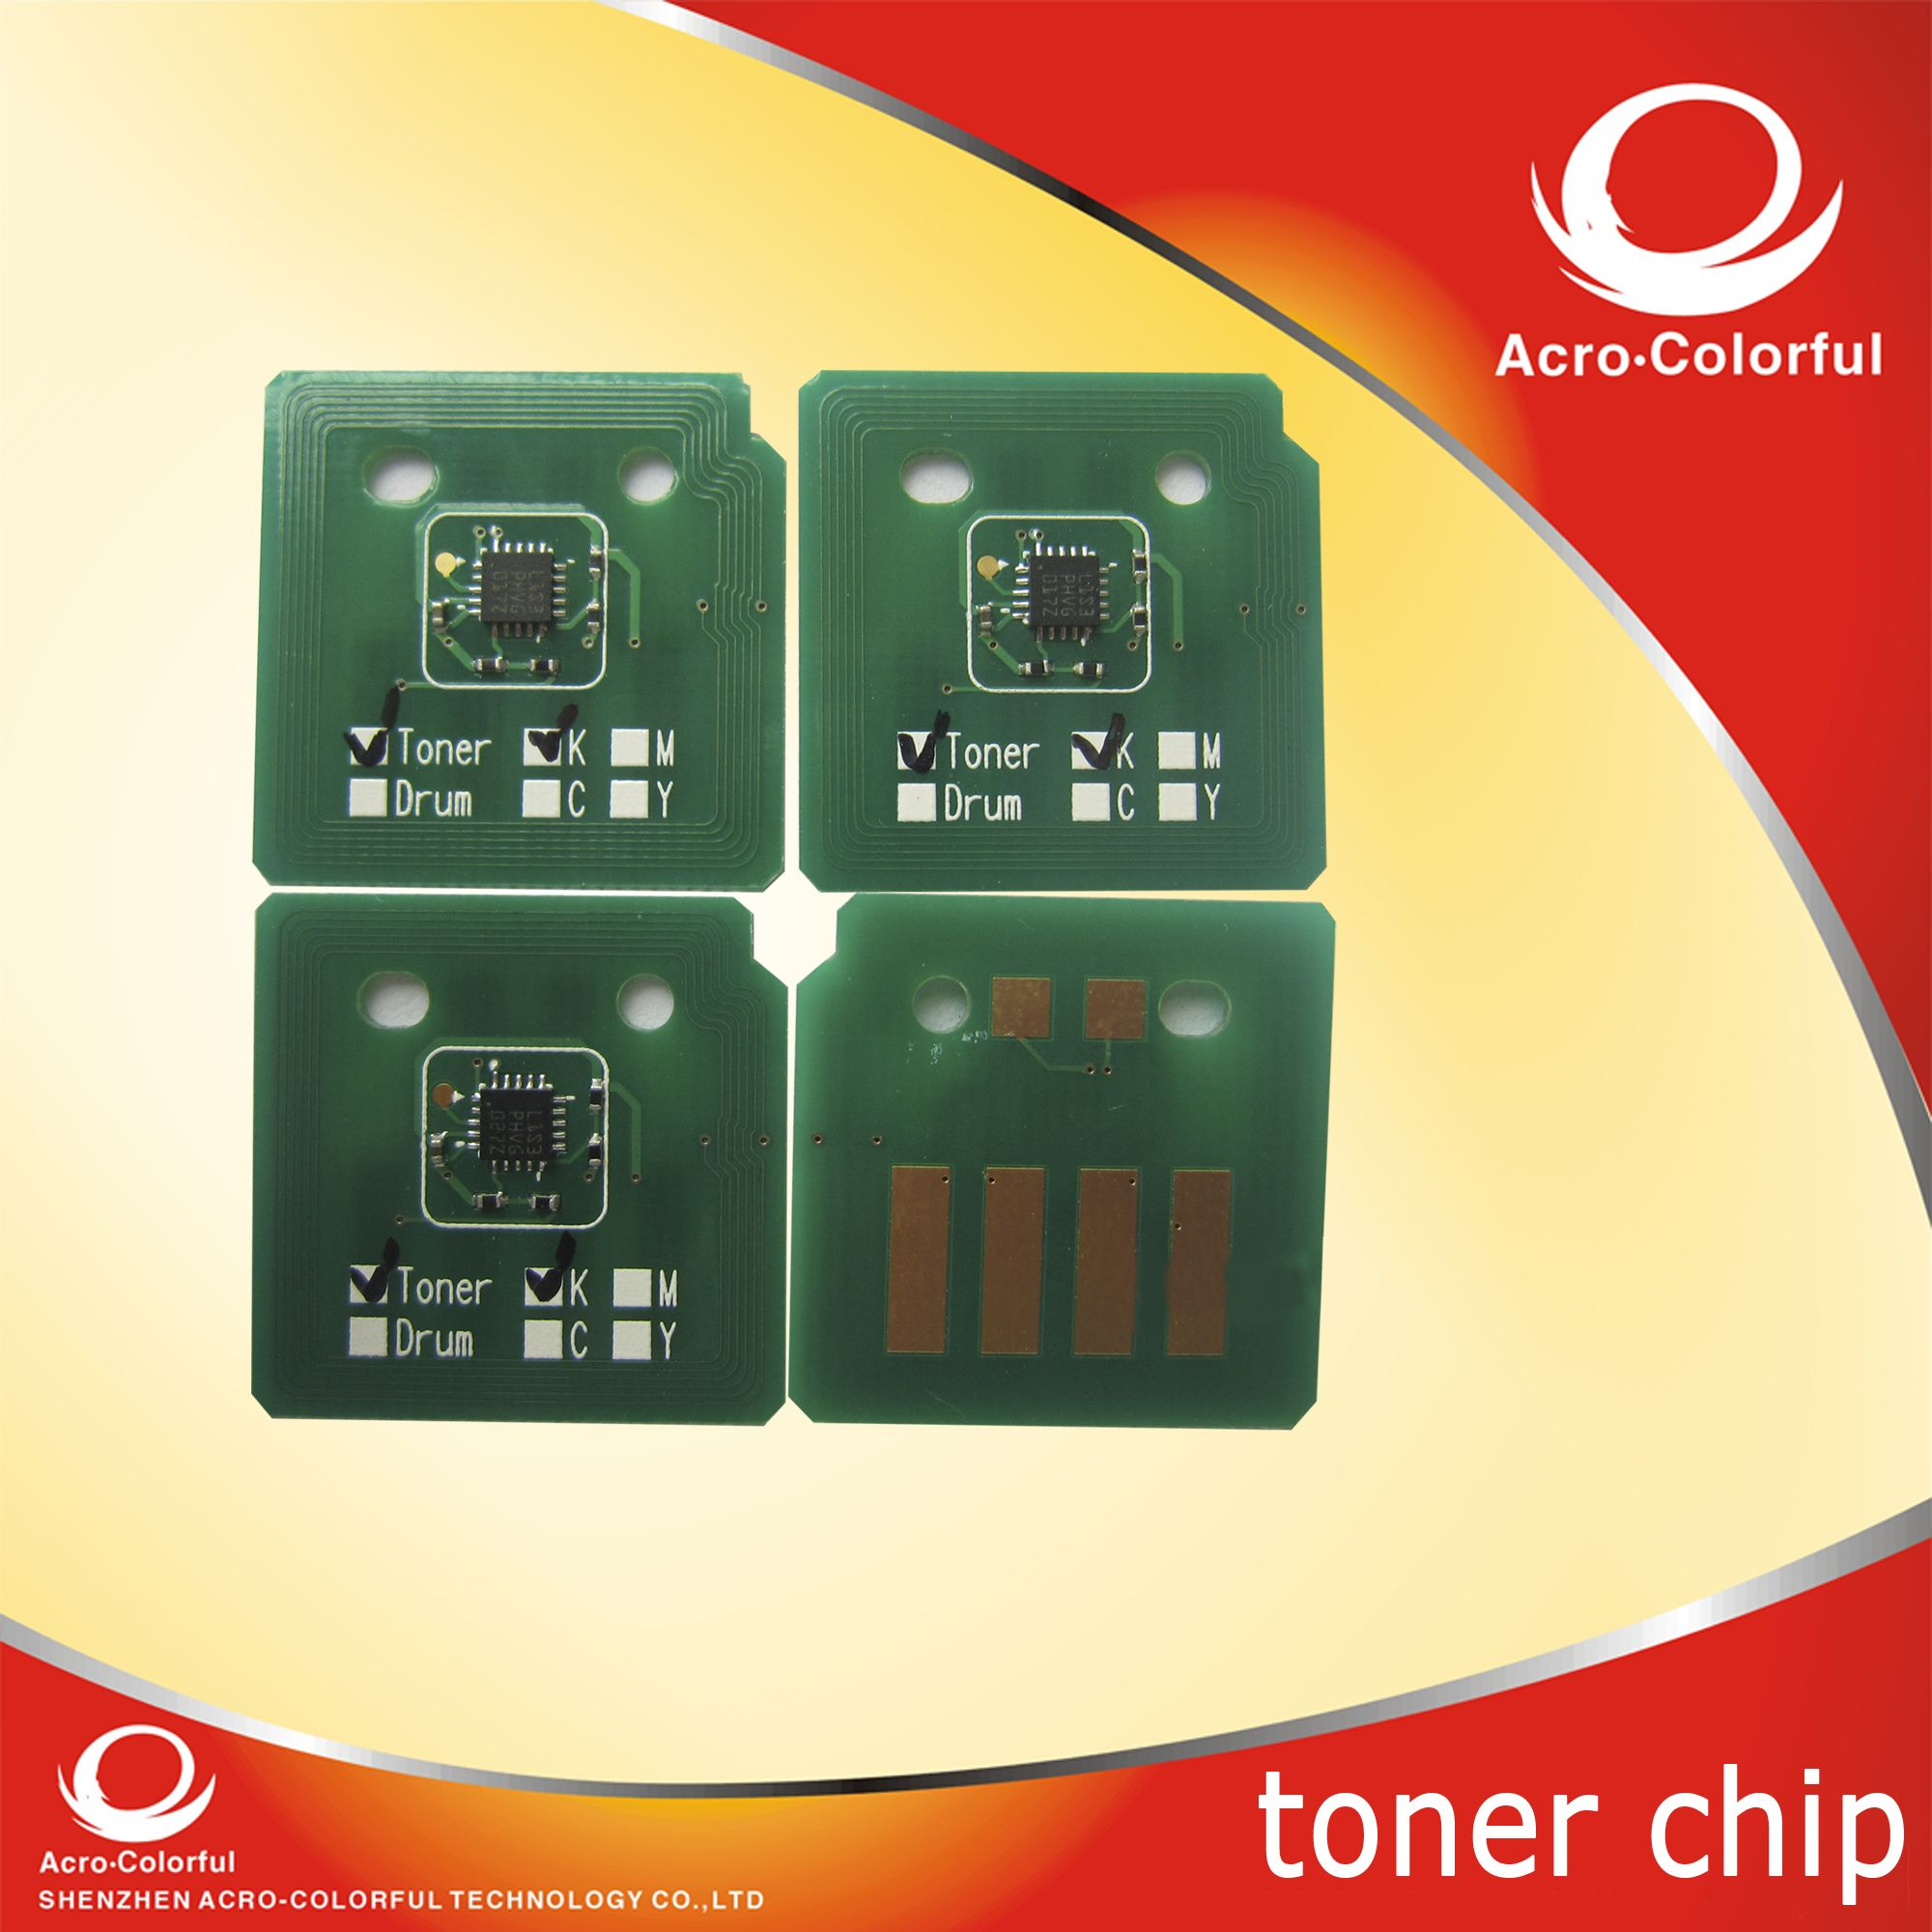 Xerox Phaser 7500 toner chip